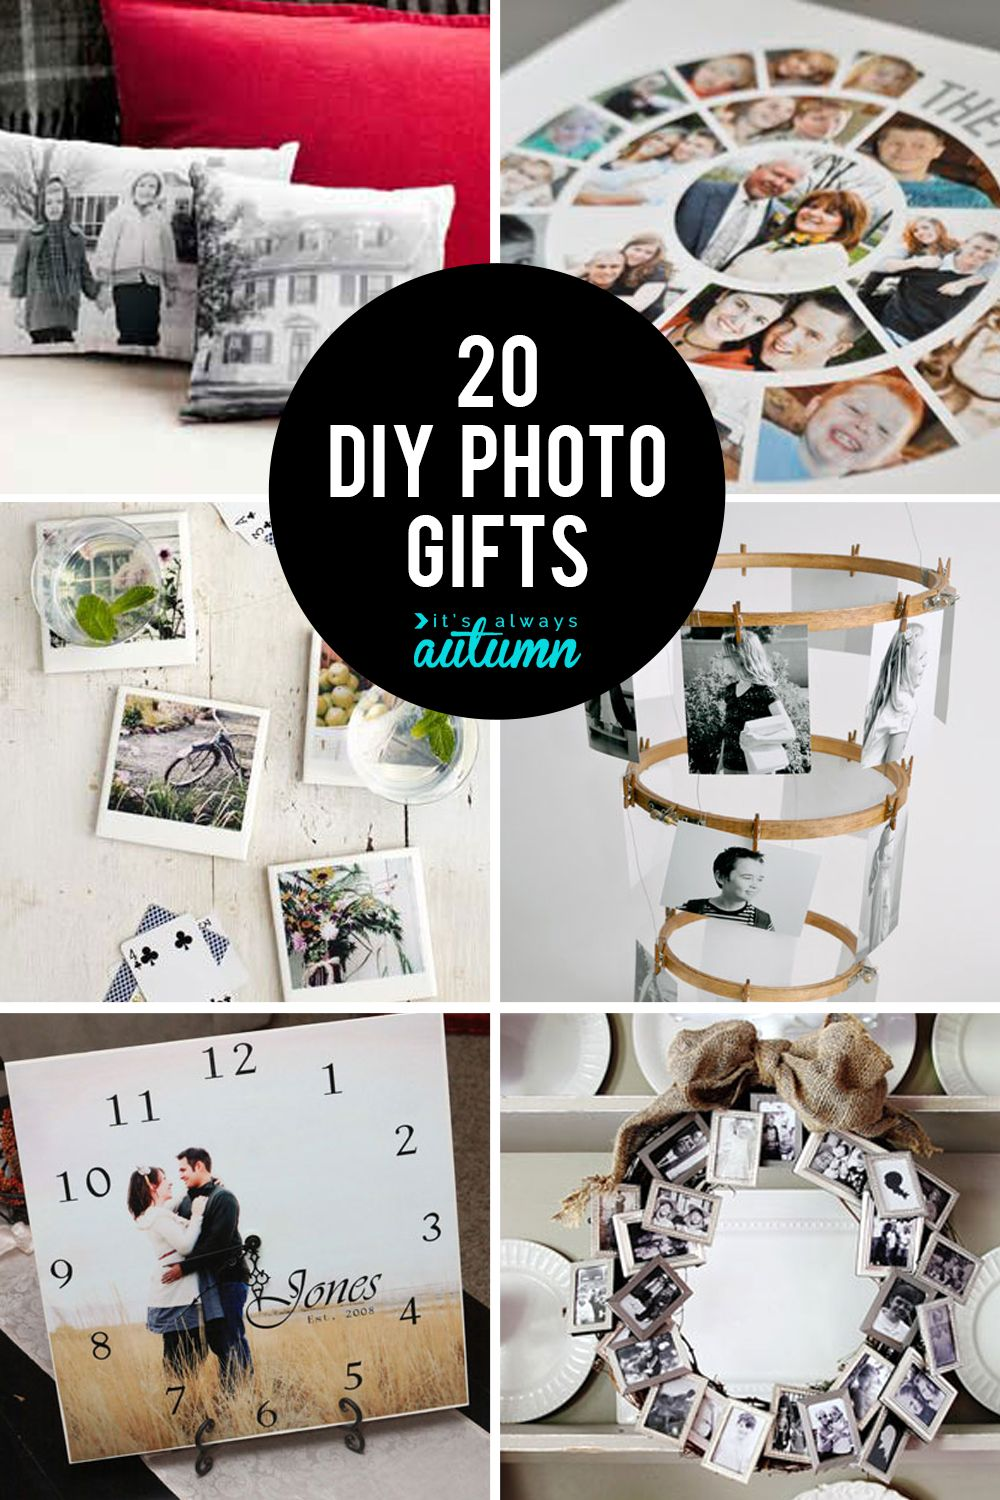 20 fantastic DIY photo gifts perfect for mother's day or